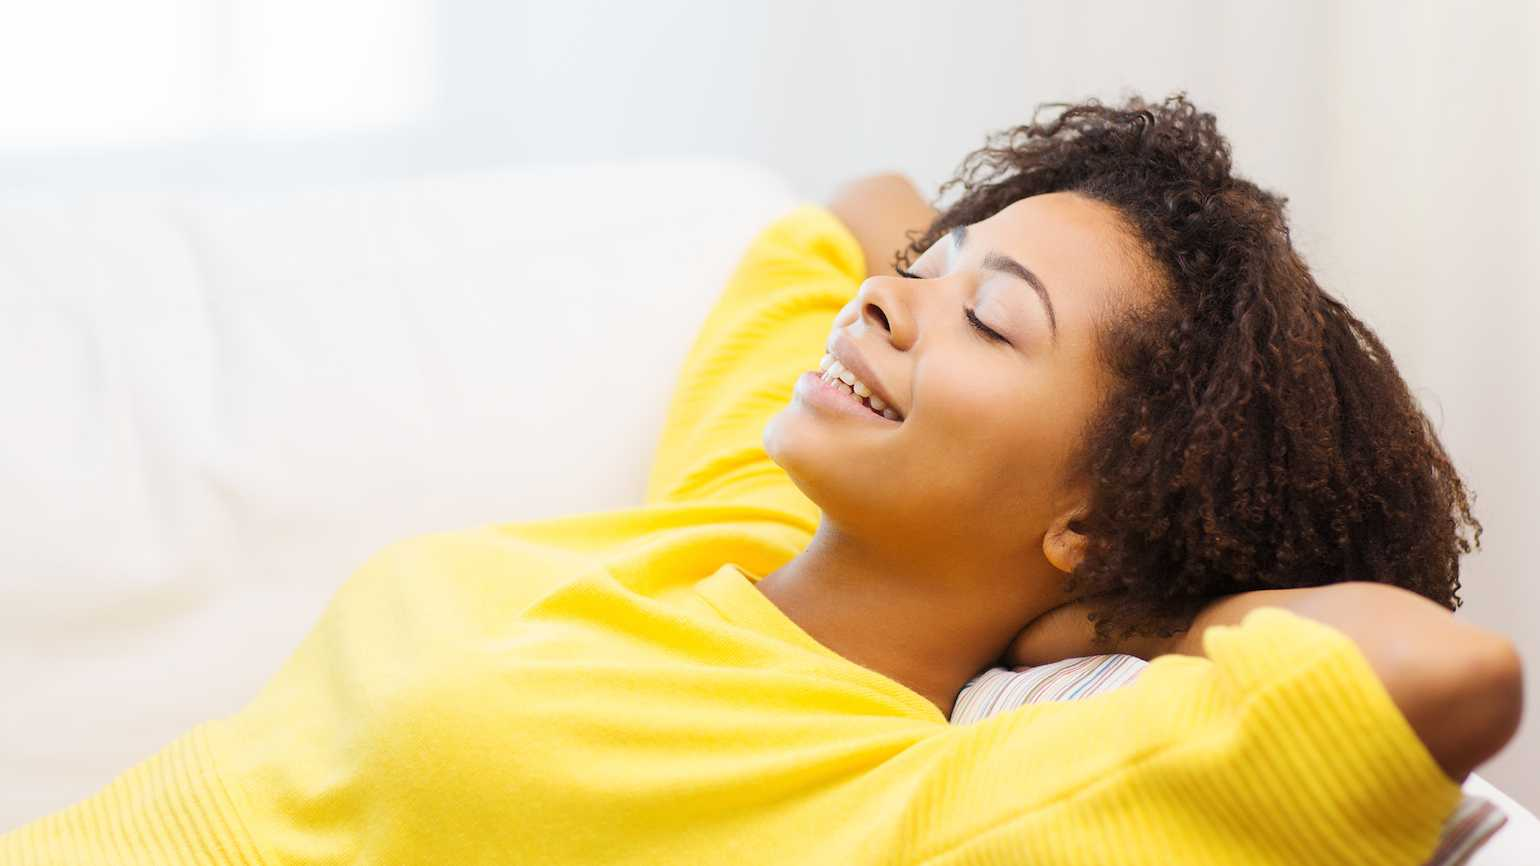 5 ways to calm your mind